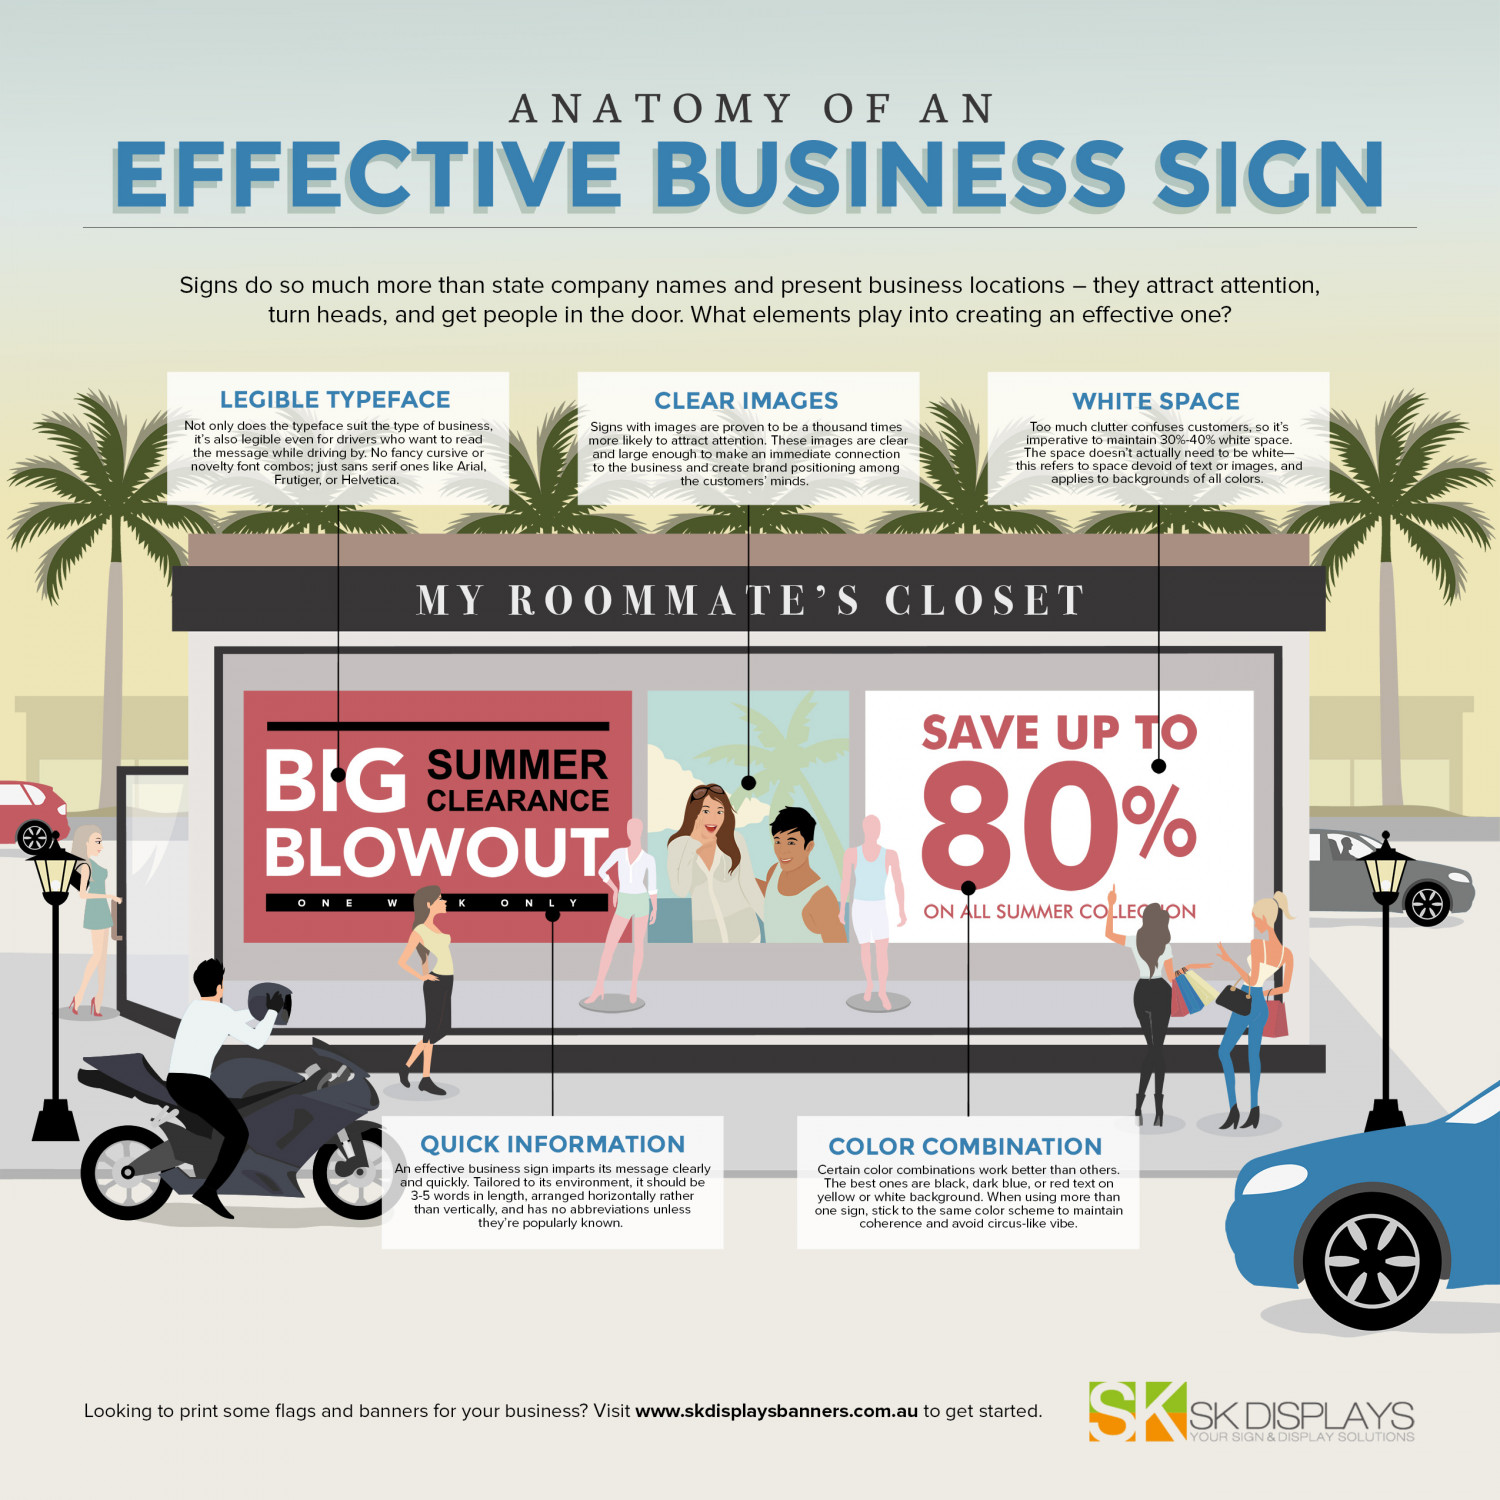 Anatomy of an Effective Business Sign Infographic